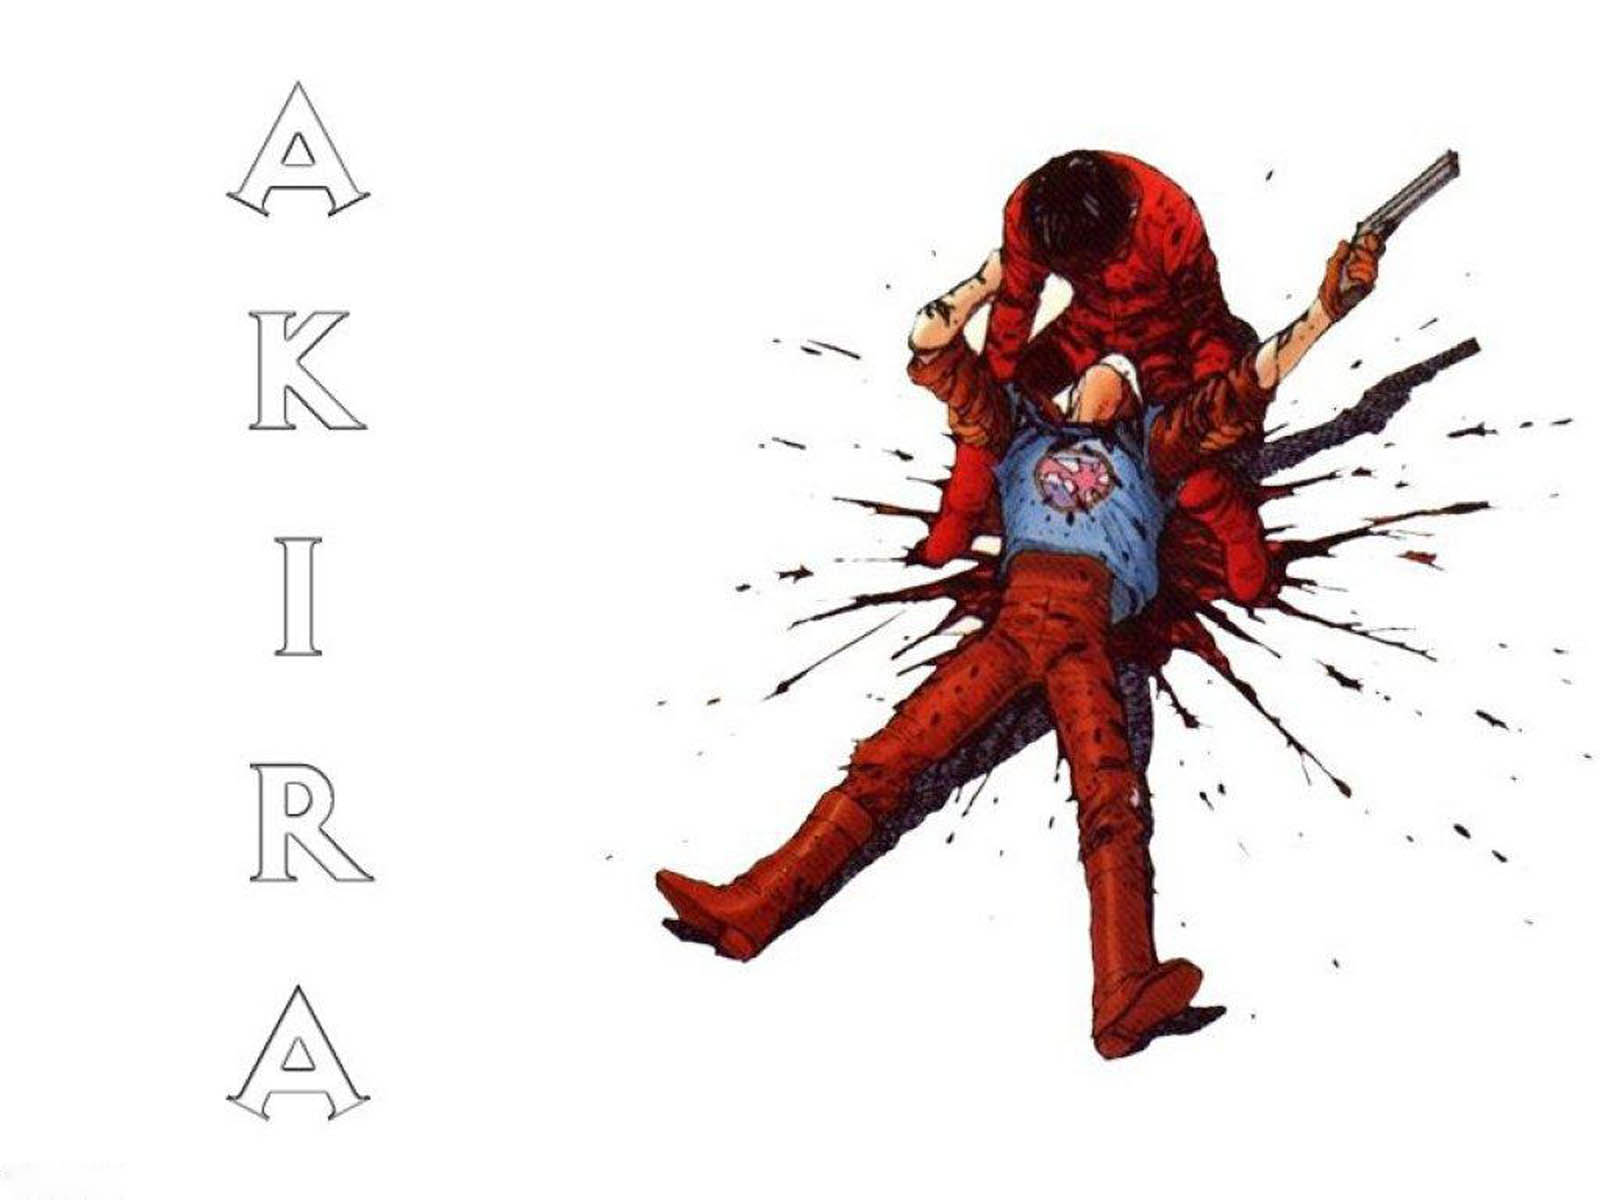 akira wallpaper 1 - photo #4